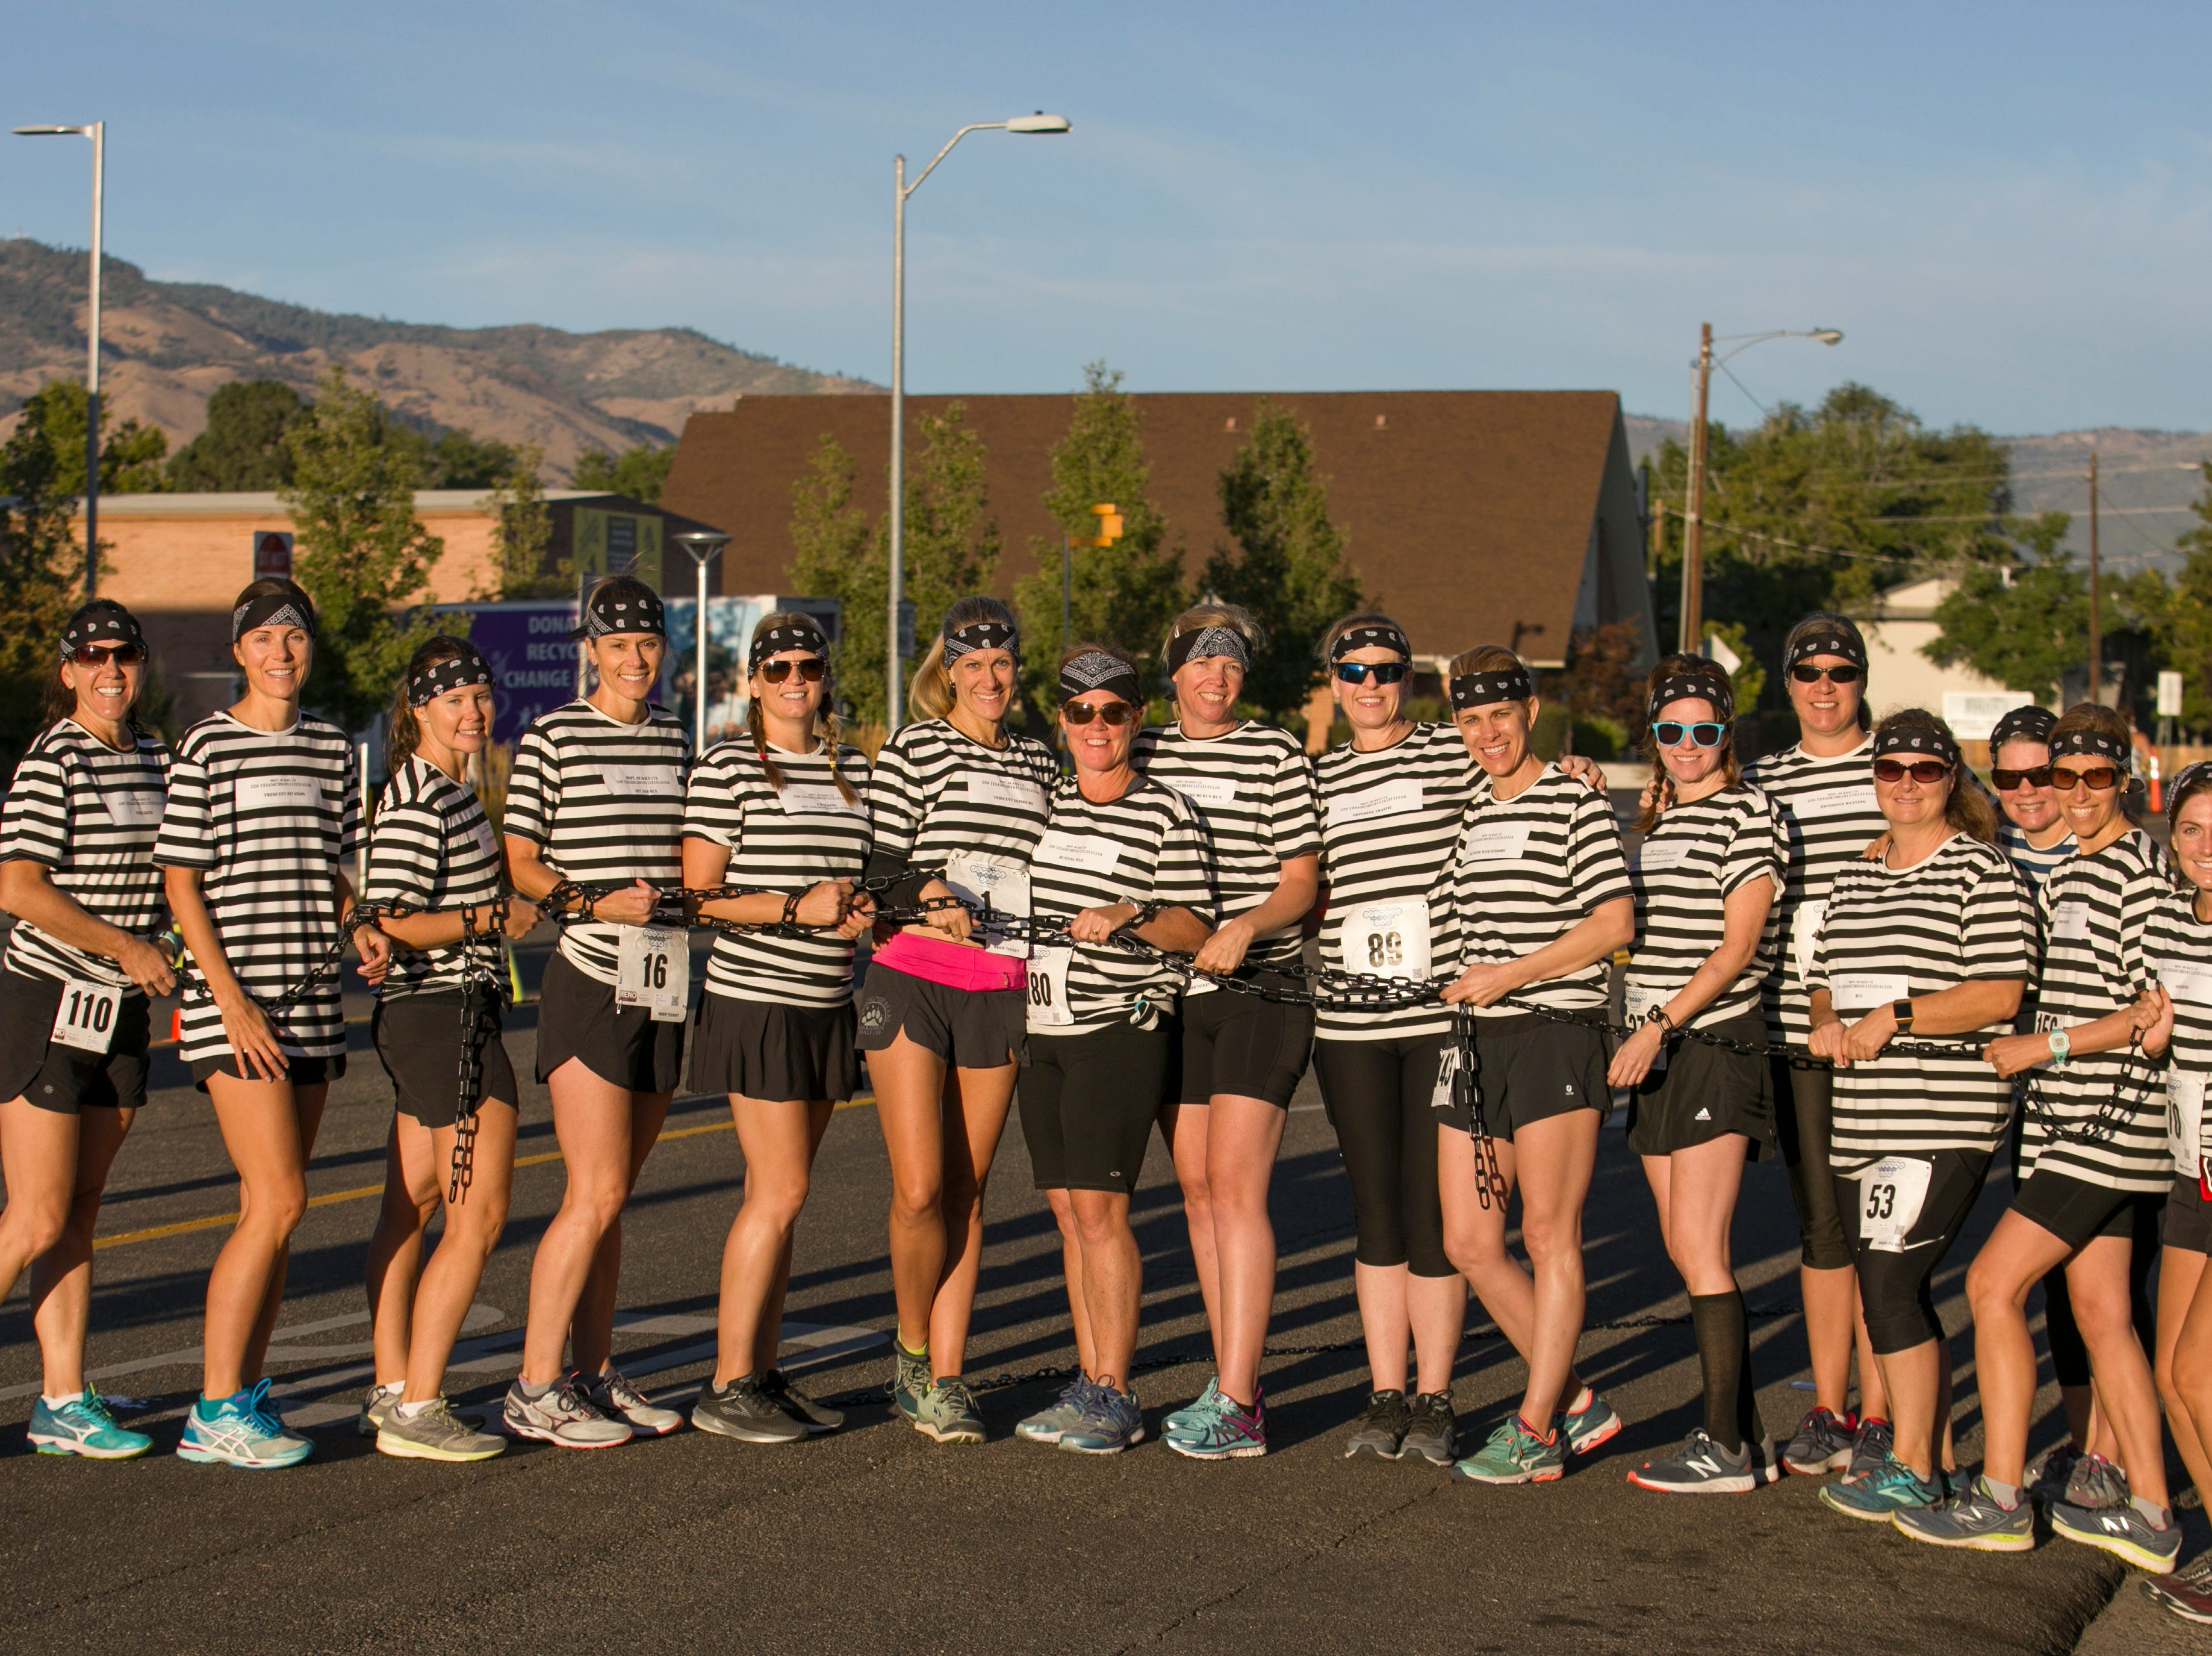 The 5:20 on the Run team before the 50th Annual Journal Jog in Reno, Nevada on Sunday, September 9, 2018.